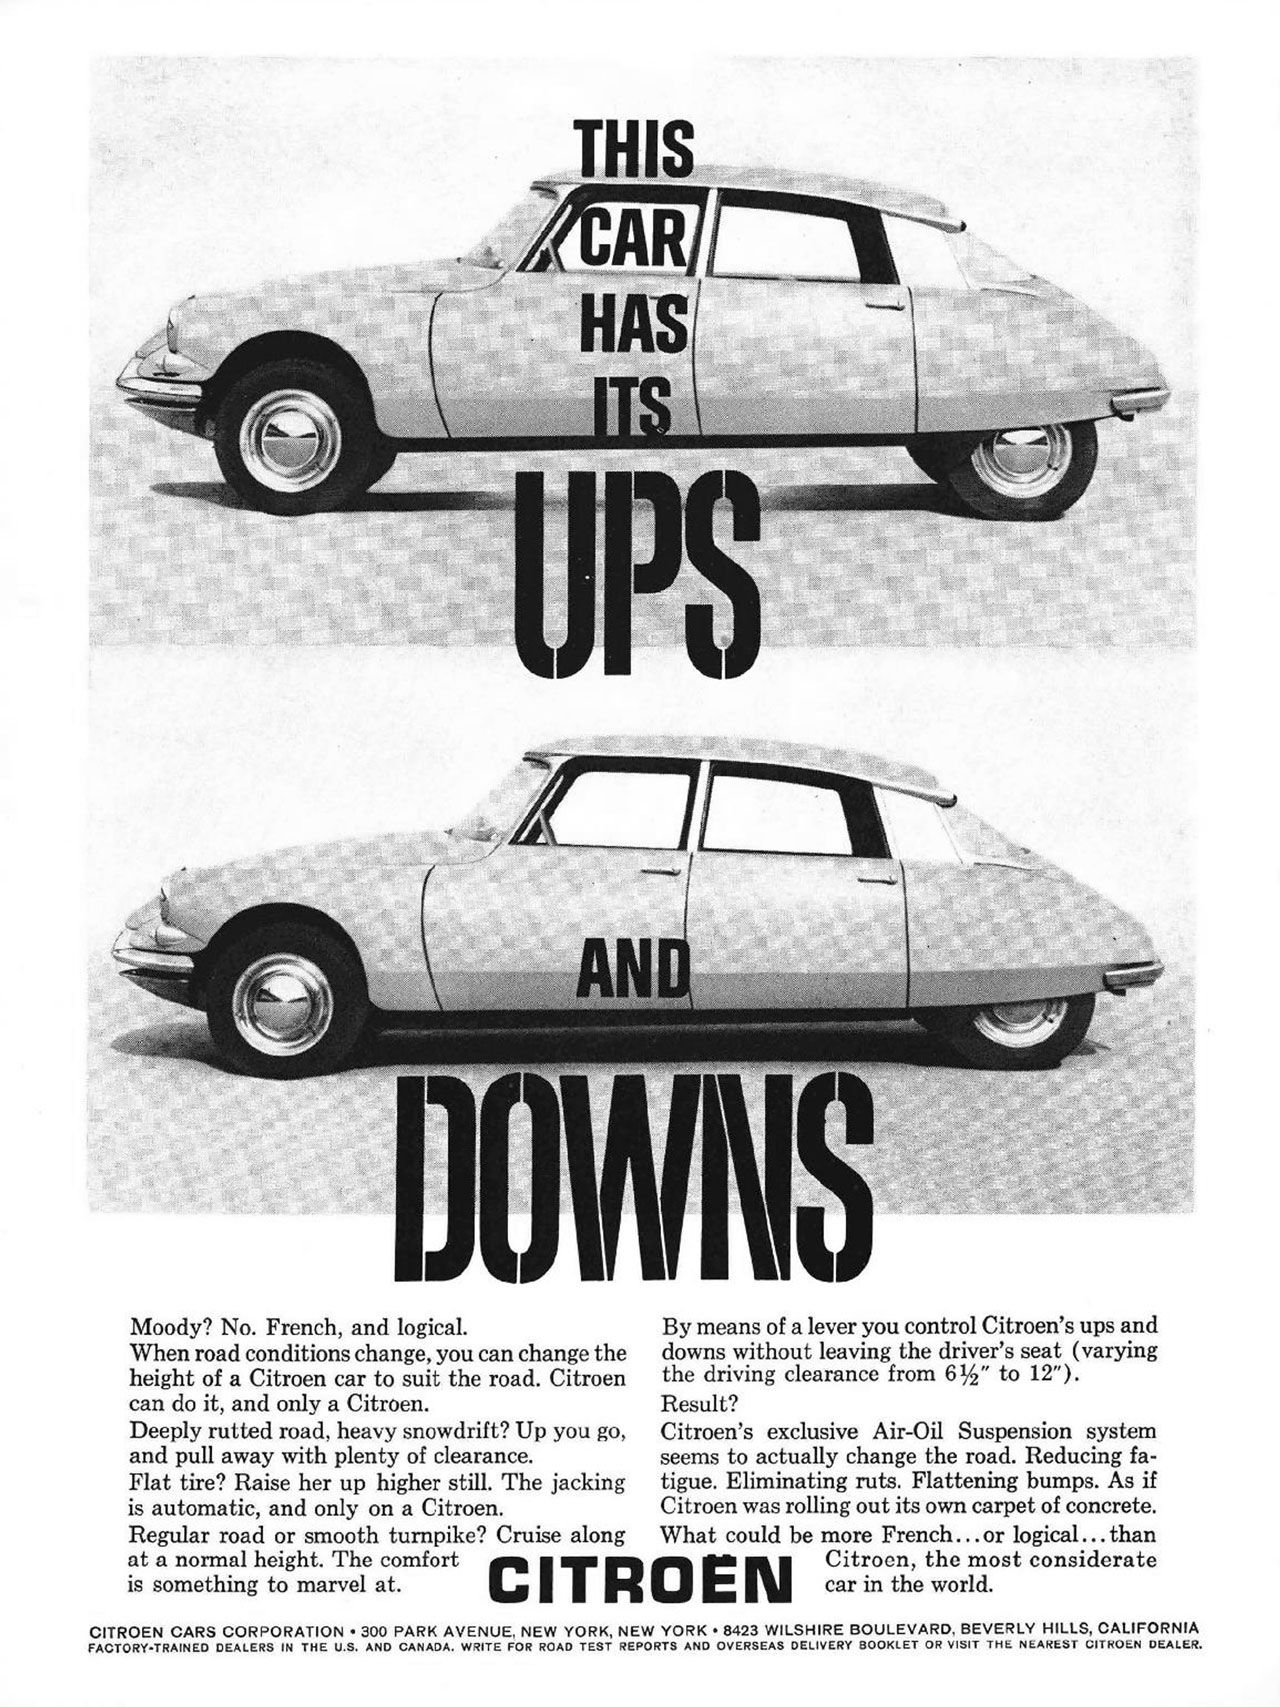 The Citroën DS has its ups and downs. Moody? No. French, and logical. When road conditions change, you can change the height of a Citroen car to suit the road. Citroen can do it, and only a Citroen. Deeply rutted road, heavy snowdrift? Up you go, and pull away with plenty of clearance. Flat tire? Raise her up higher still. The jacking is automatic, and only on a Citroen. Regular road or smooth turnpike? Cruise along at a normal height. The comfort is something to marvel at.  By means of a lever you control Citroen's ups and downs without leaving the driver's seat (varying the driving clearance from 6 1/2' to 12'). Result? Citroen's exclusive Air-Oil Suspension system seems to actually change the road. Reducing fa-tigue. Eliminating ruts. Flattening bumps. As if Citroen was rolling out its own carpet of concrete. What could be more French... or logical ... than Citroen, the most considerate car in the world.  CITROEN CARS CORPORATION • 300 PARK AVENUE, NEW YORK, NEW YORK • 8423 WILSHIRE BOULEVARD, BEVERLY HILLS, CALIFORNIA FACTORY-TRAINED DEALERS IN THE U.S. AND CANADA. WRITE FOR ROAD TEST REPORTS AND OVERSEAS DELIVERY BOOKLET OR VISIT THE NEAREST CITROEN DEALER.